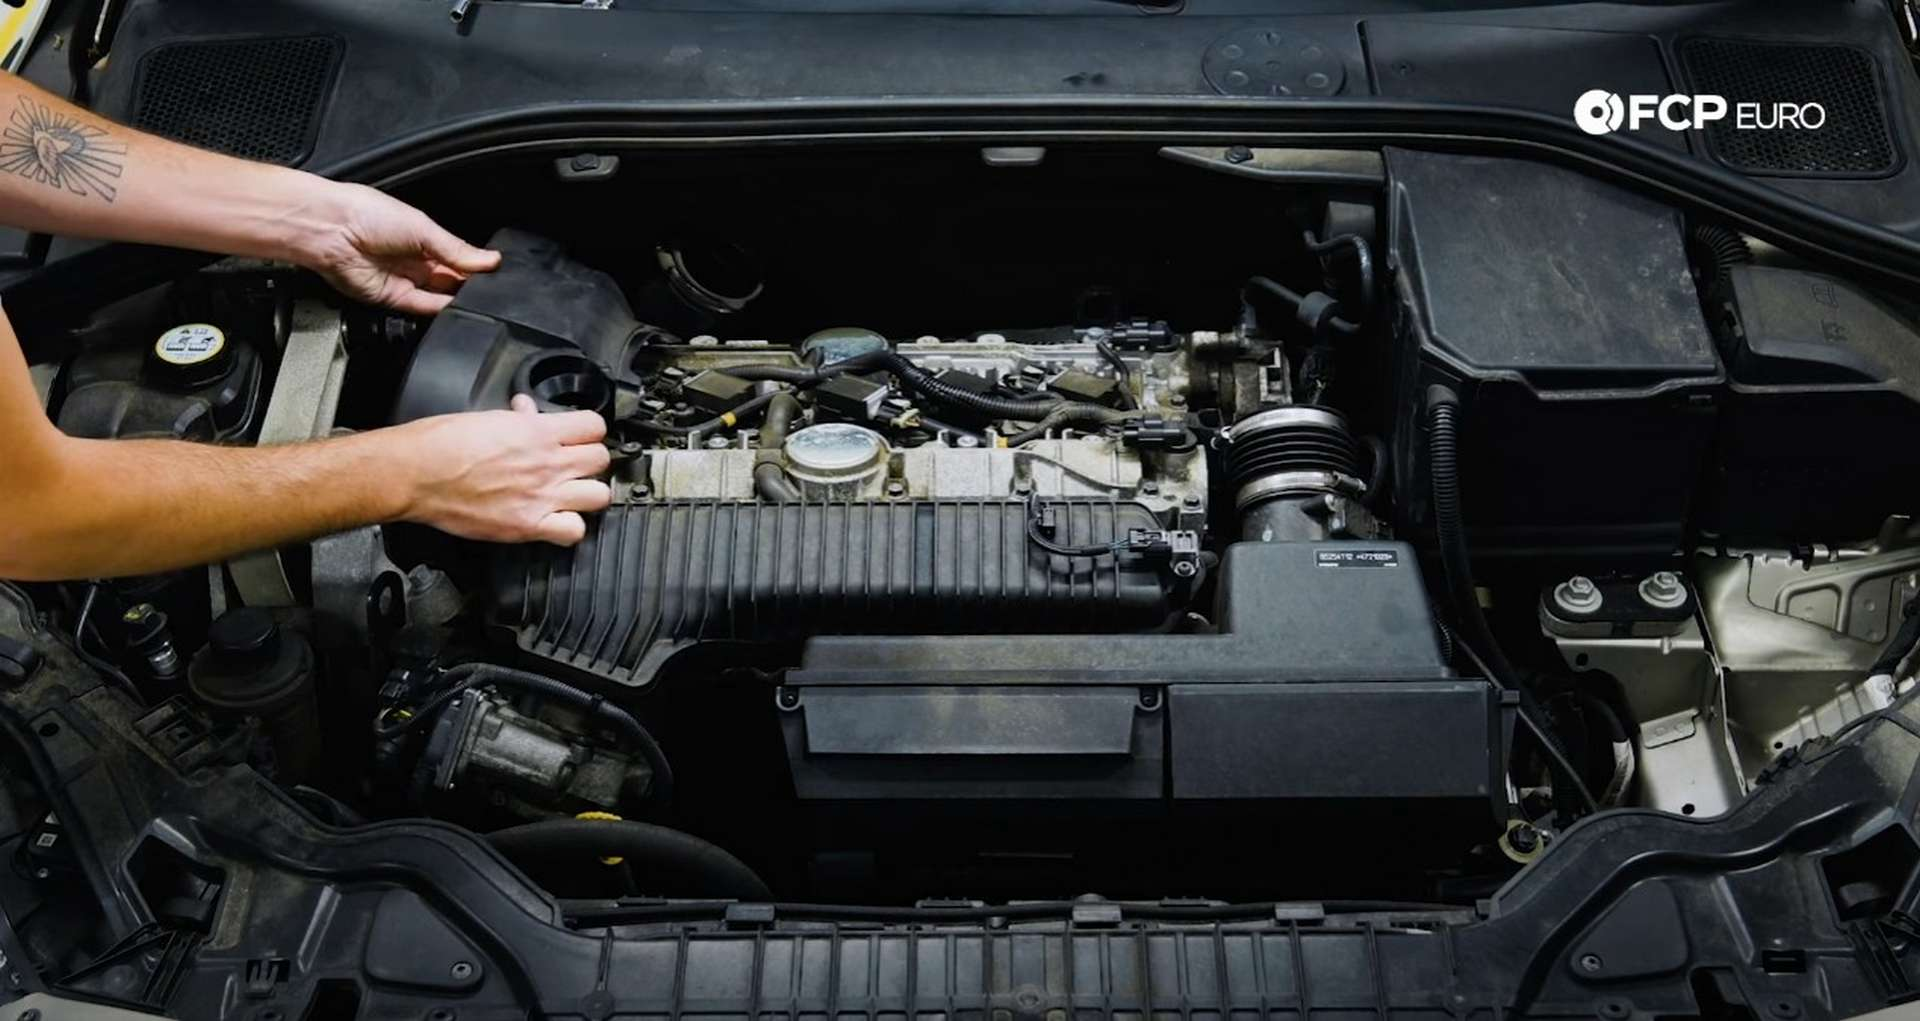 DIY Volvo Spark Plug and Ignition Coil Replacement removing the timing cover